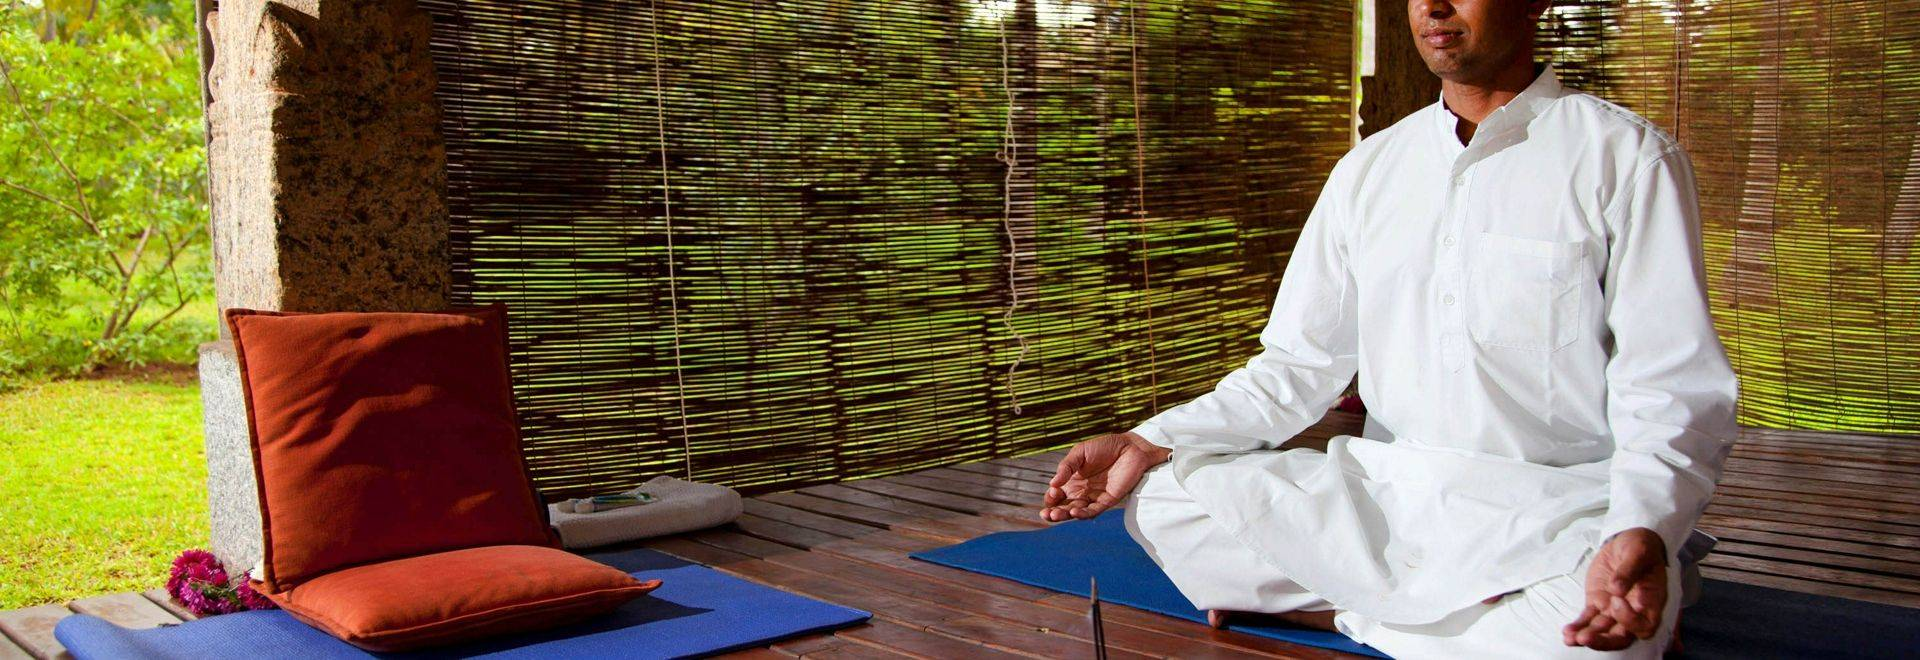 Shreyas-meditation.jpg